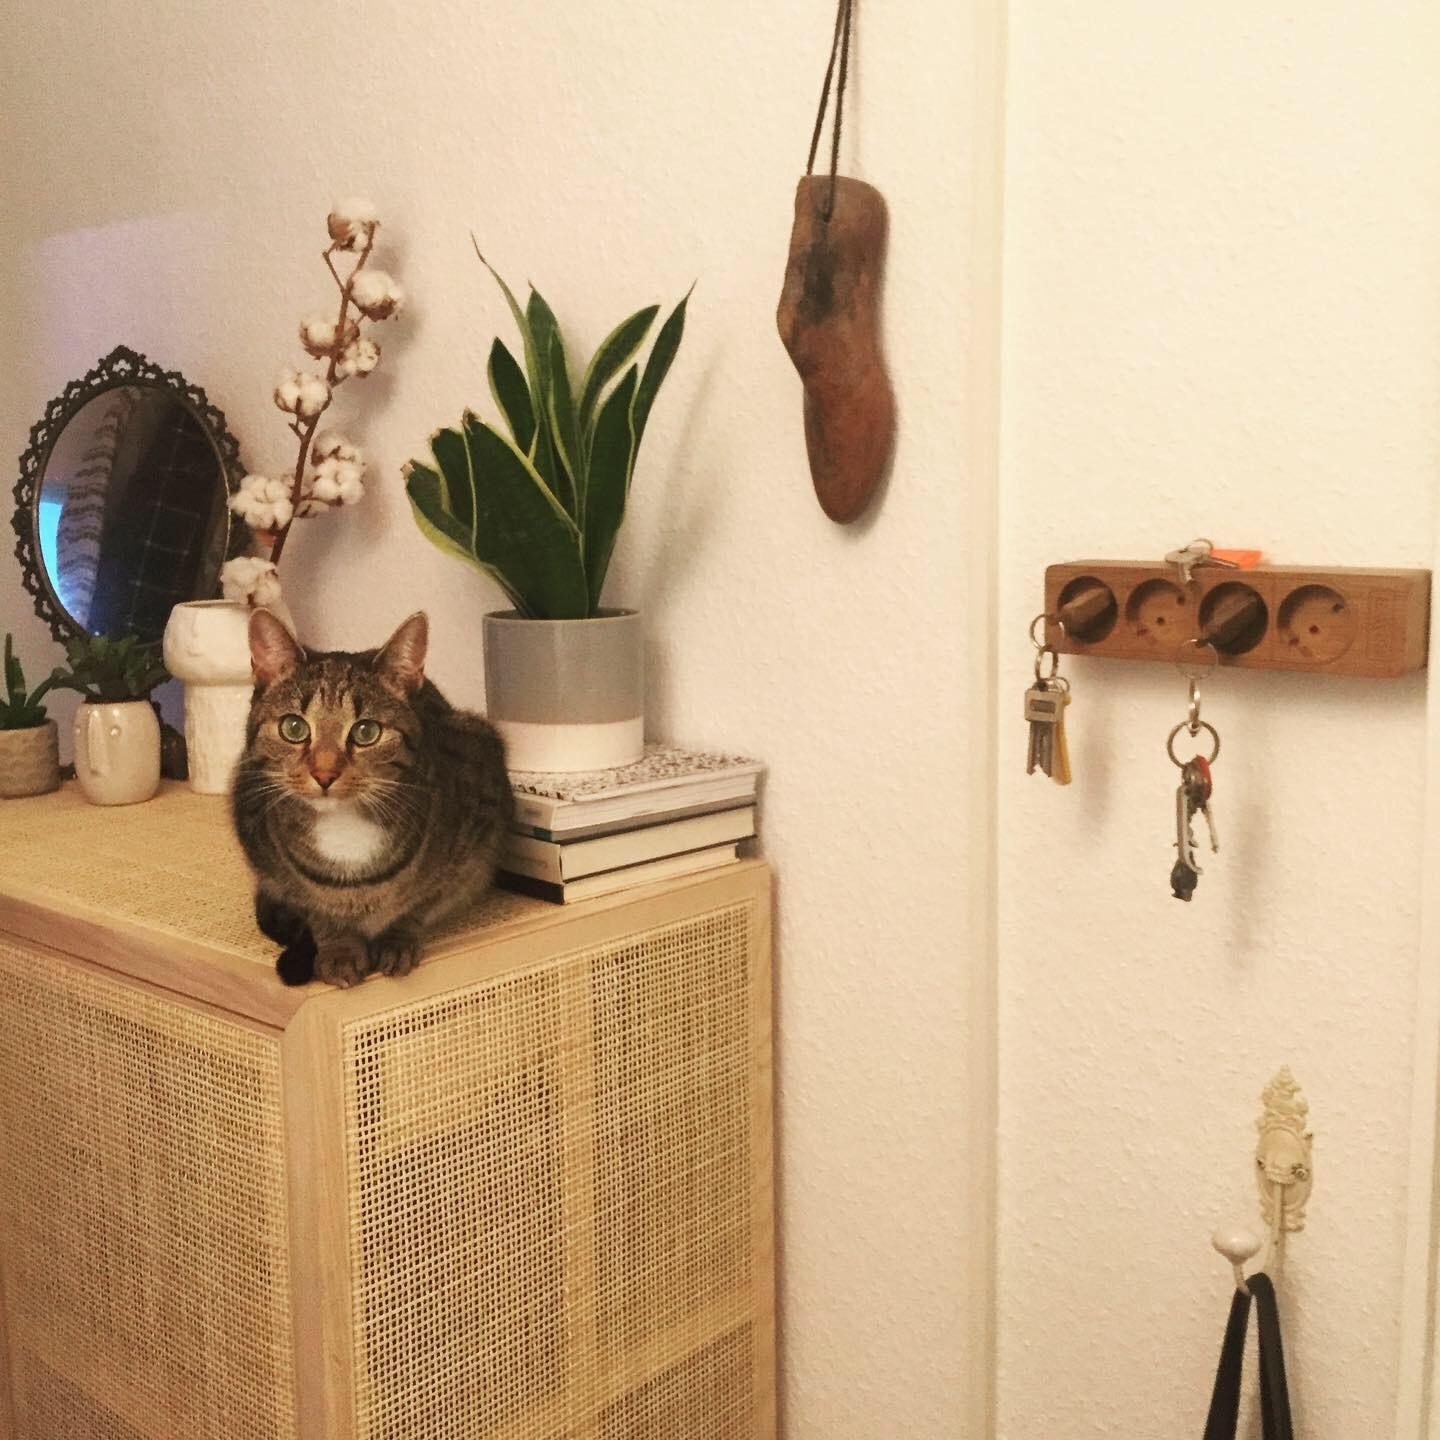 Fluransicht 